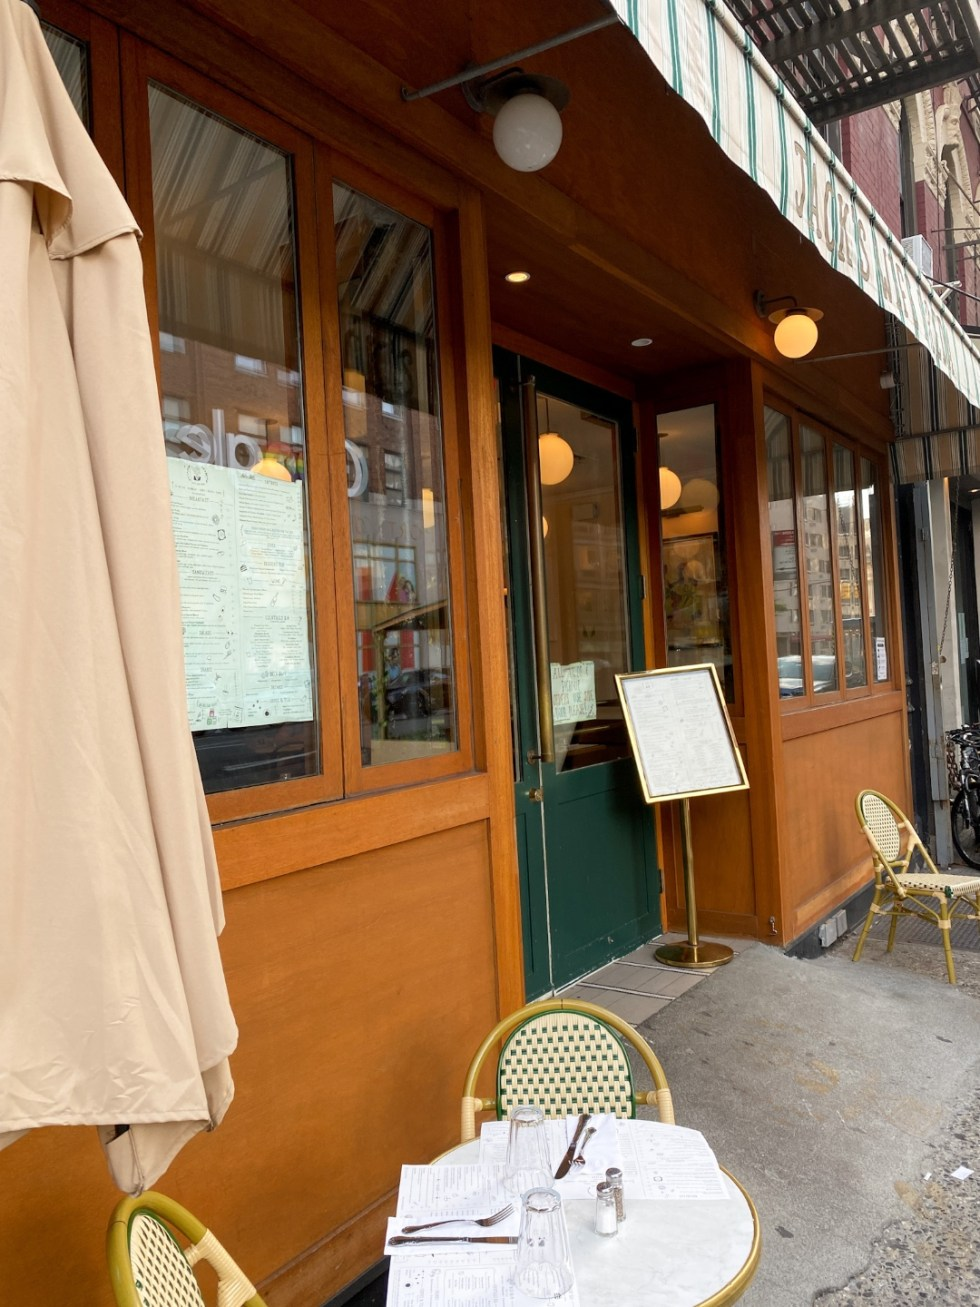 NYC Summer Weekend: Things to Do in NYC in the Summer - I'm Fixin' To - @imfixintoblog   NYC Summer Weekend by popular NC travel blog, I'm Fixin' To: image of Jack's Wife Freda restaurant.